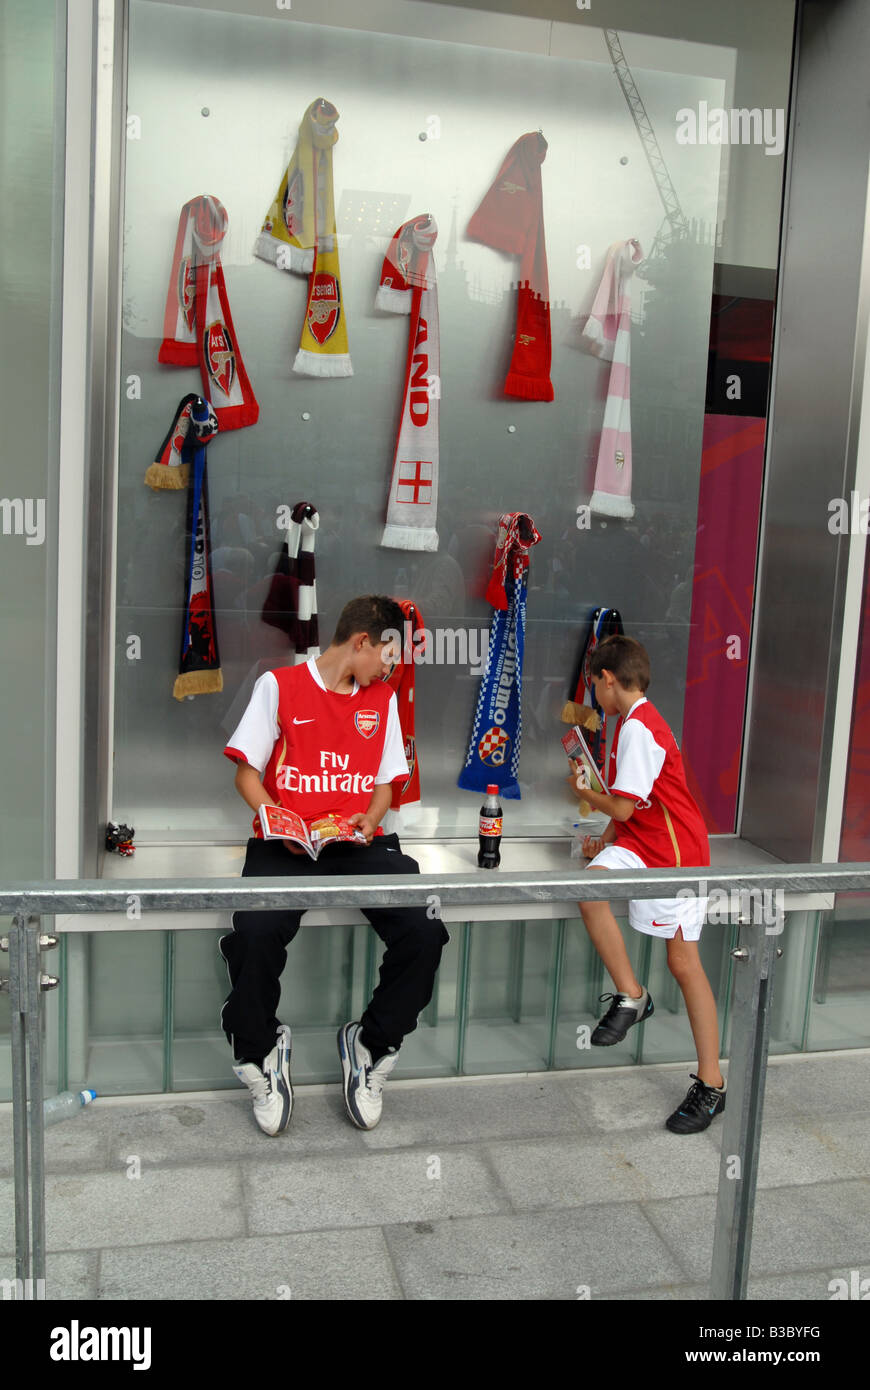 UK Children outside the shop at the Emirates Stadium after an Arsenal home game Photo Julio Etchart - Stock Image